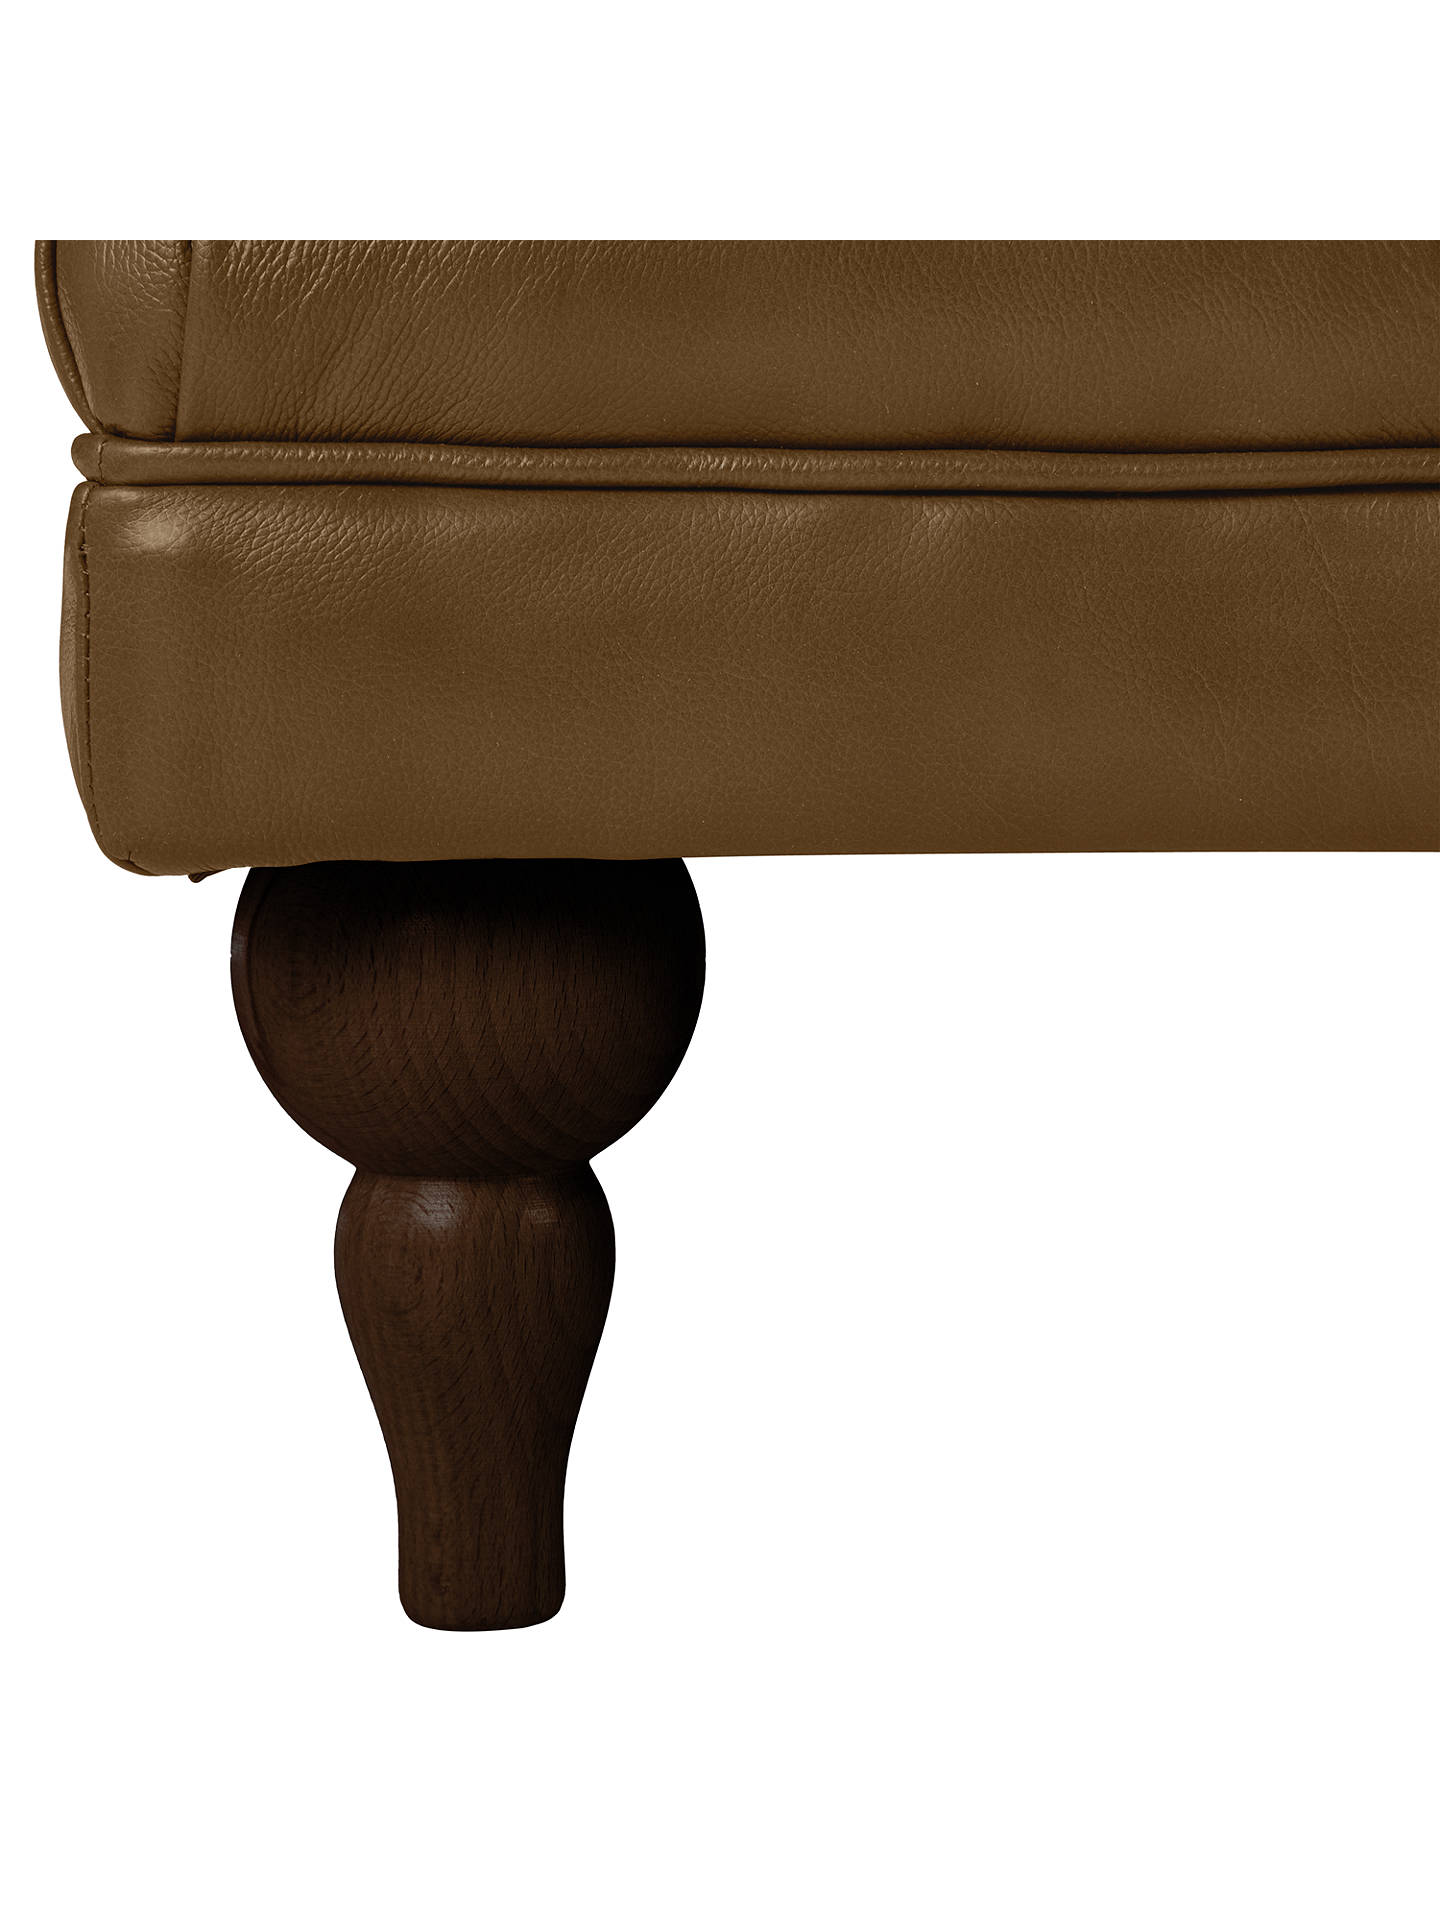 BuyJohn Lewis & Partners Delia Grand Classic Buttoned Footstool, Dark Leg, Demetra Light Tan Online at johnlewis.com